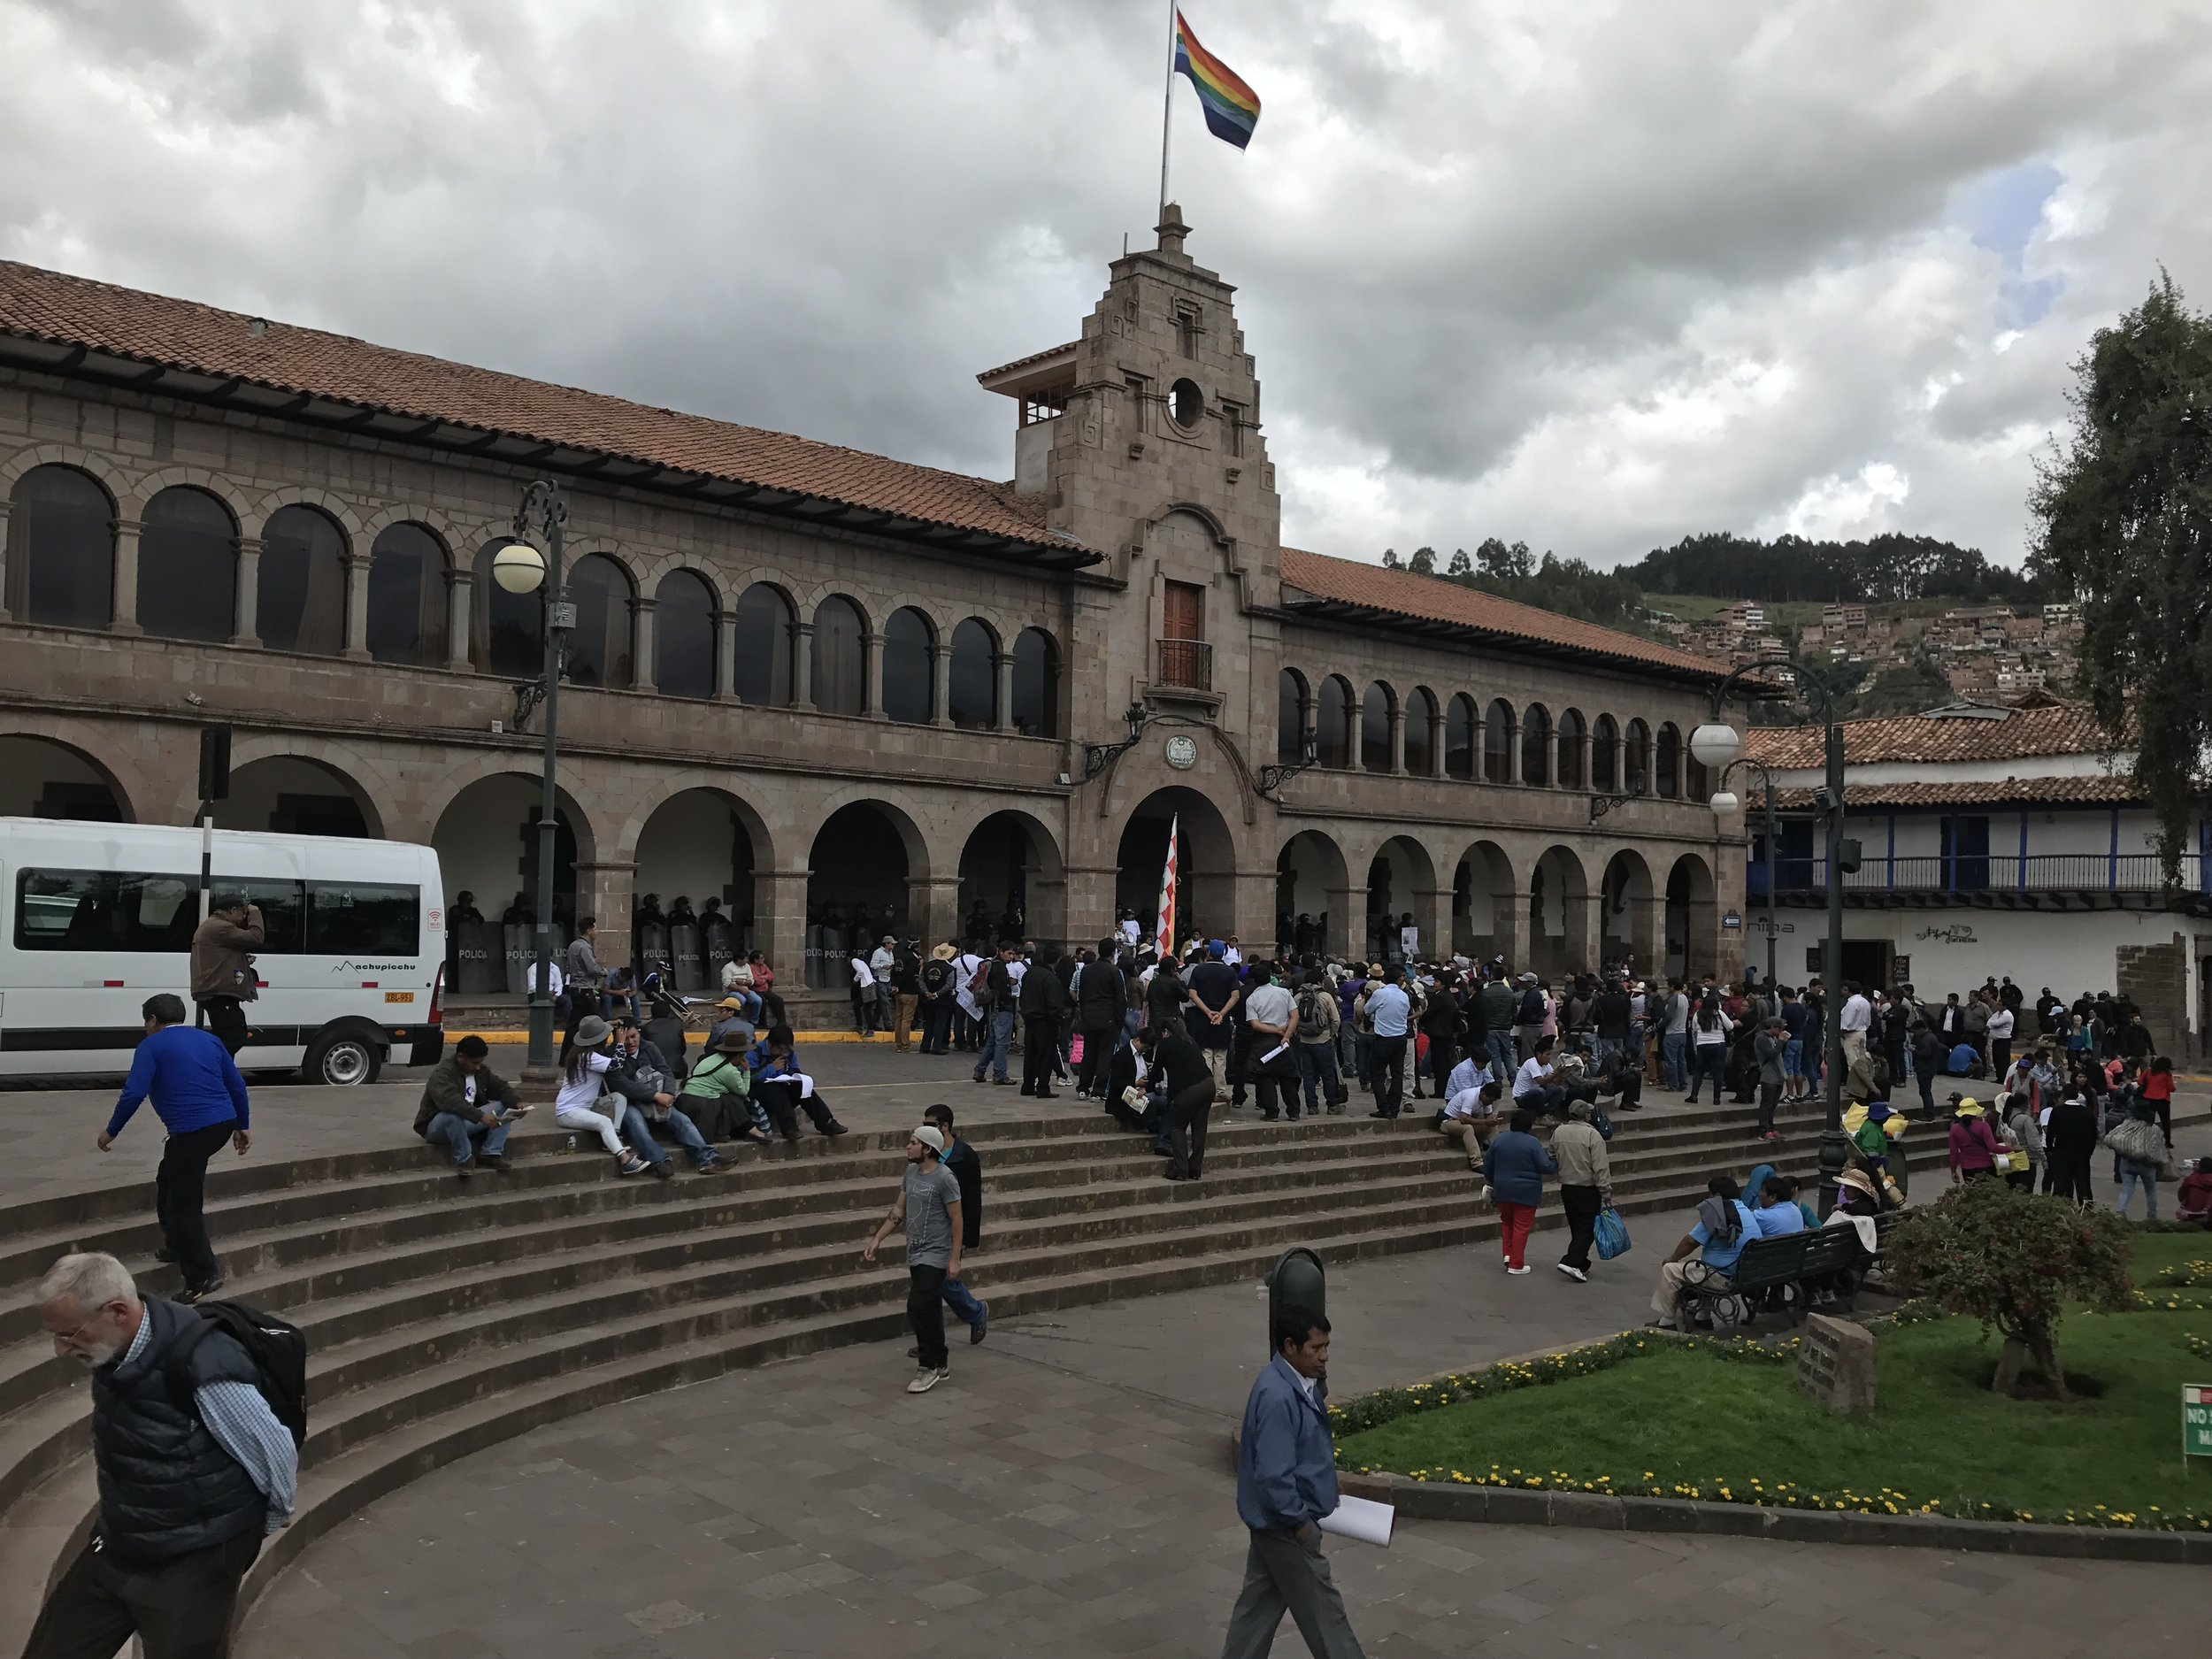 Peaceful demonstration held in front of a government building.